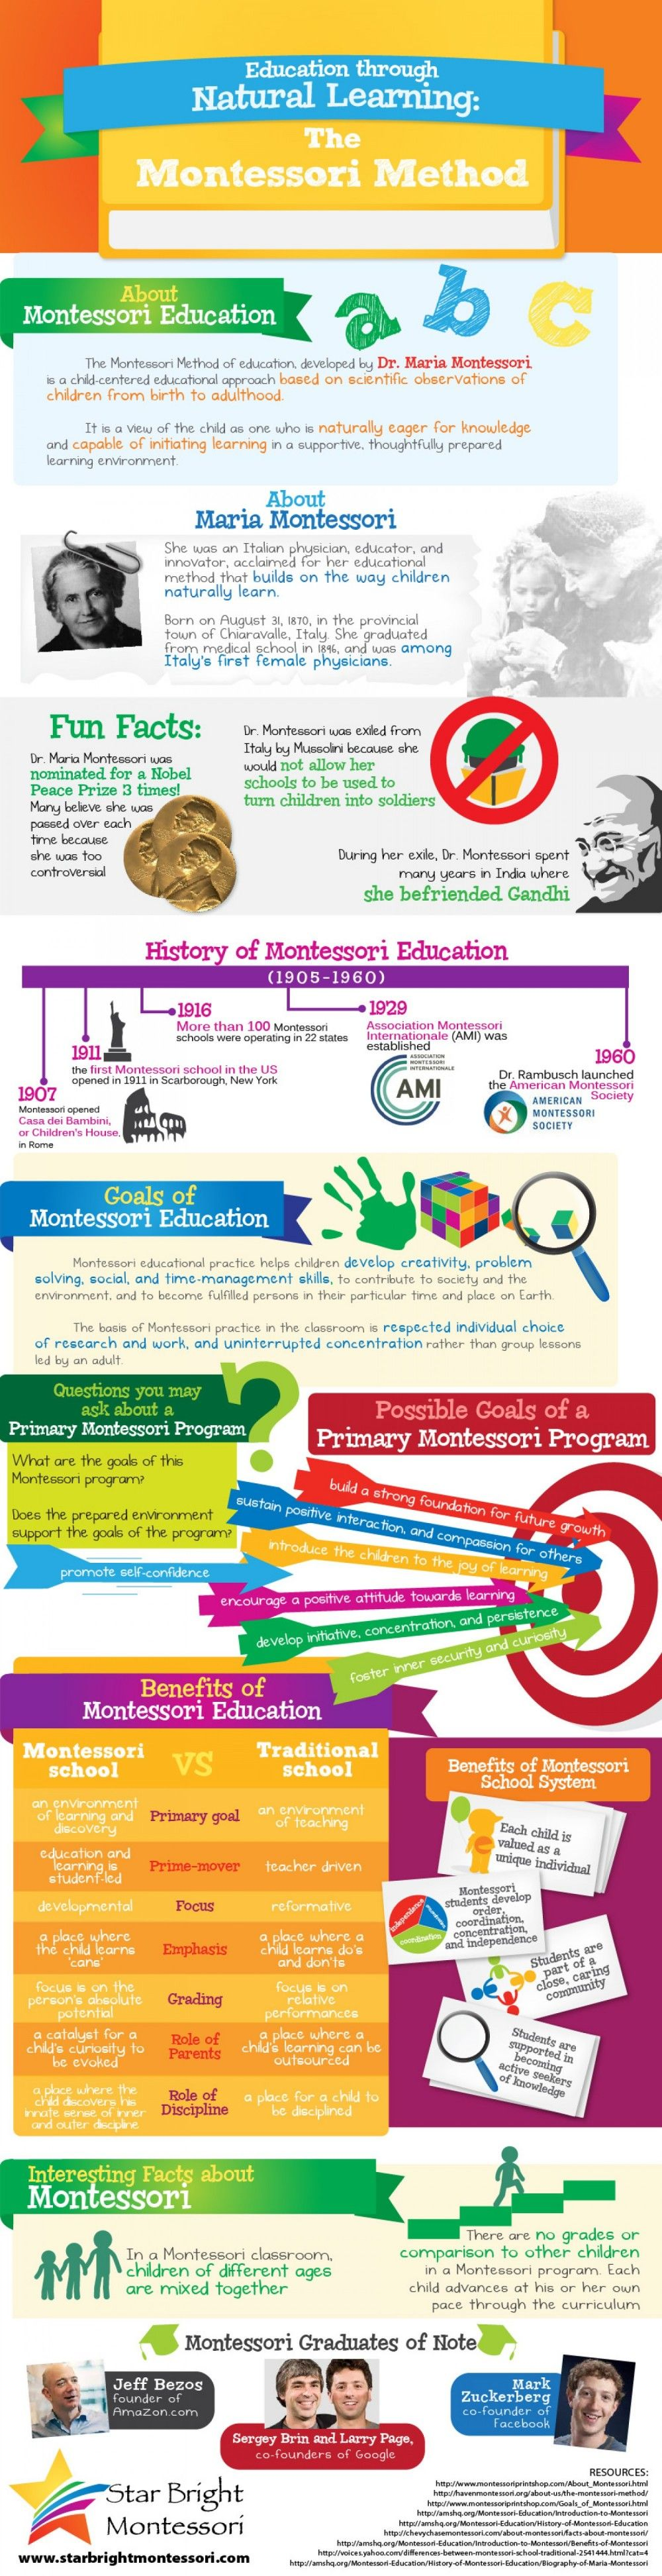 Education-through-Natural-Learning-Infographic